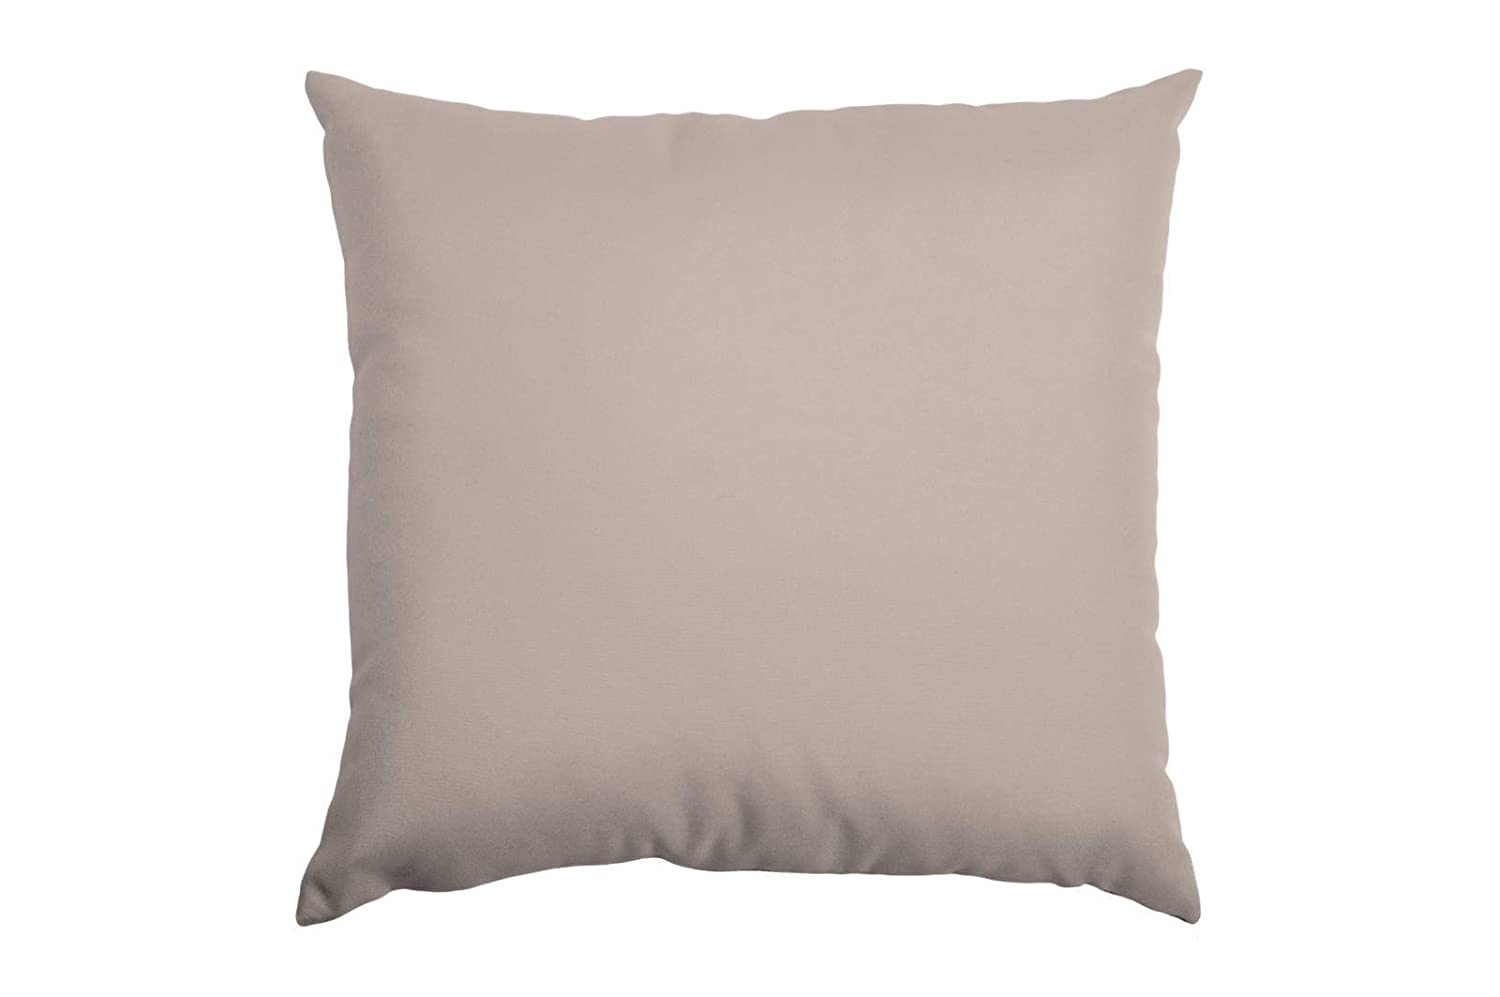 Lovely Casa Sunny Coussin Outdoor, Polyester, Lin, 40 x 40 cm STOF C08458002